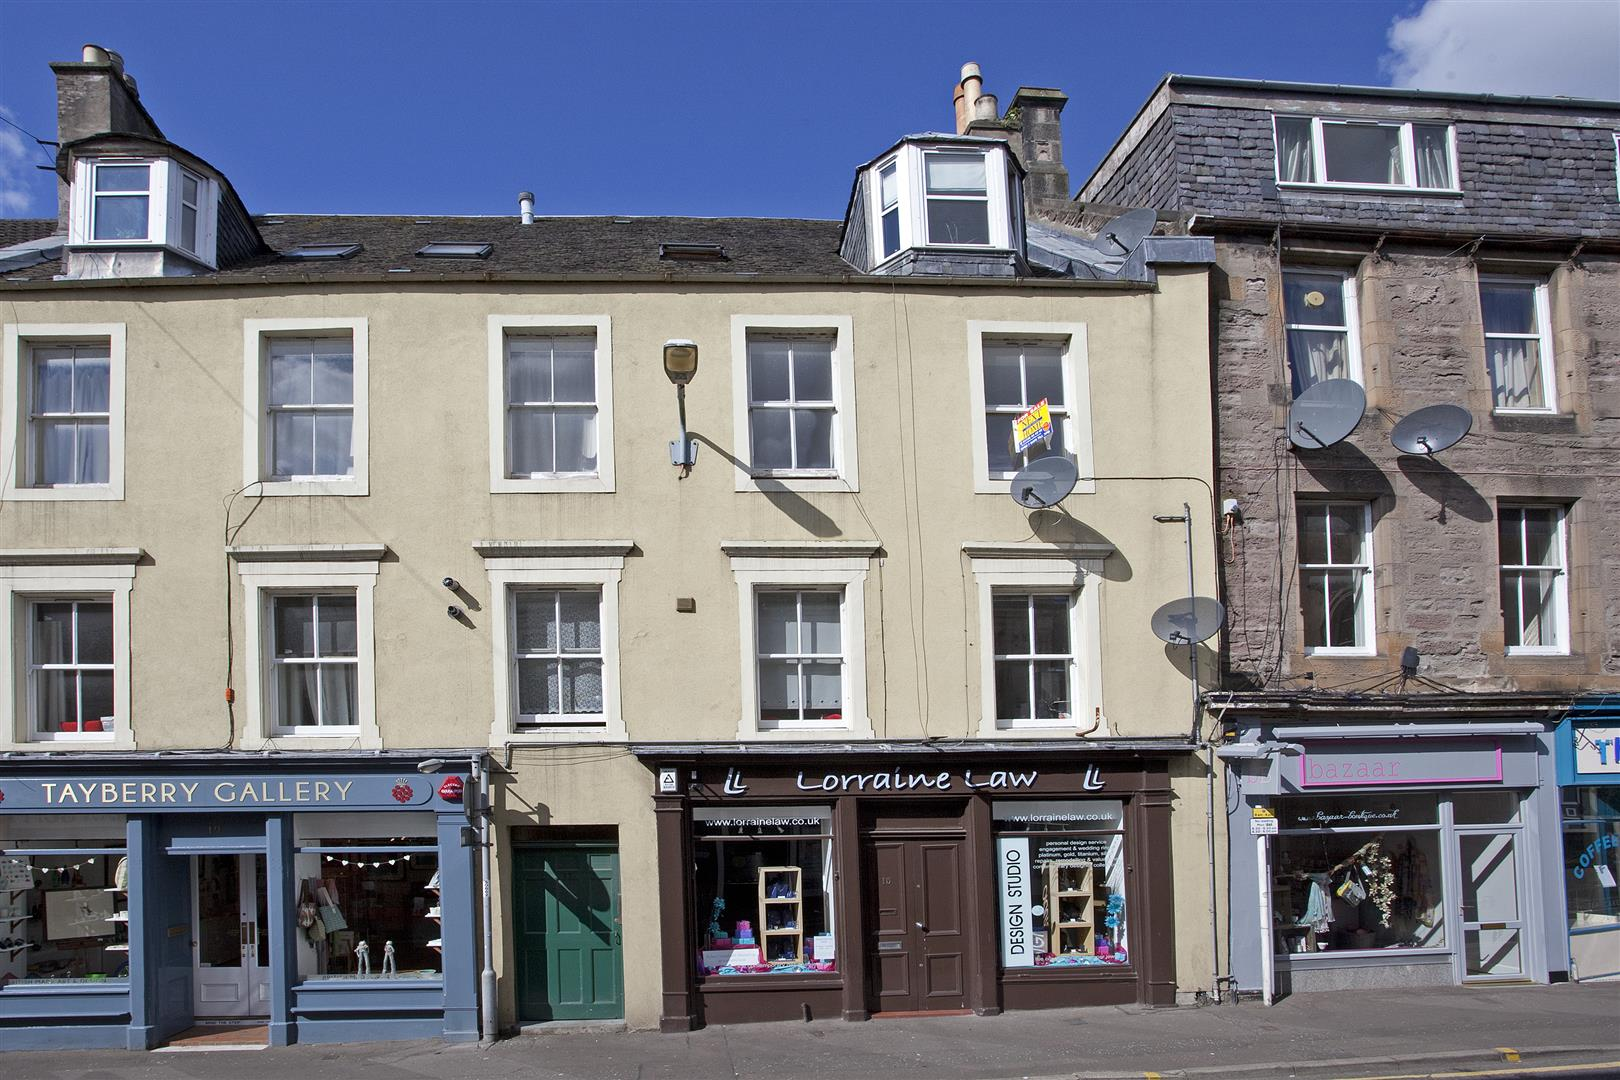 Flat 3, 17, Princes Street, Perth, Perthshire, PH2 8NG, UK